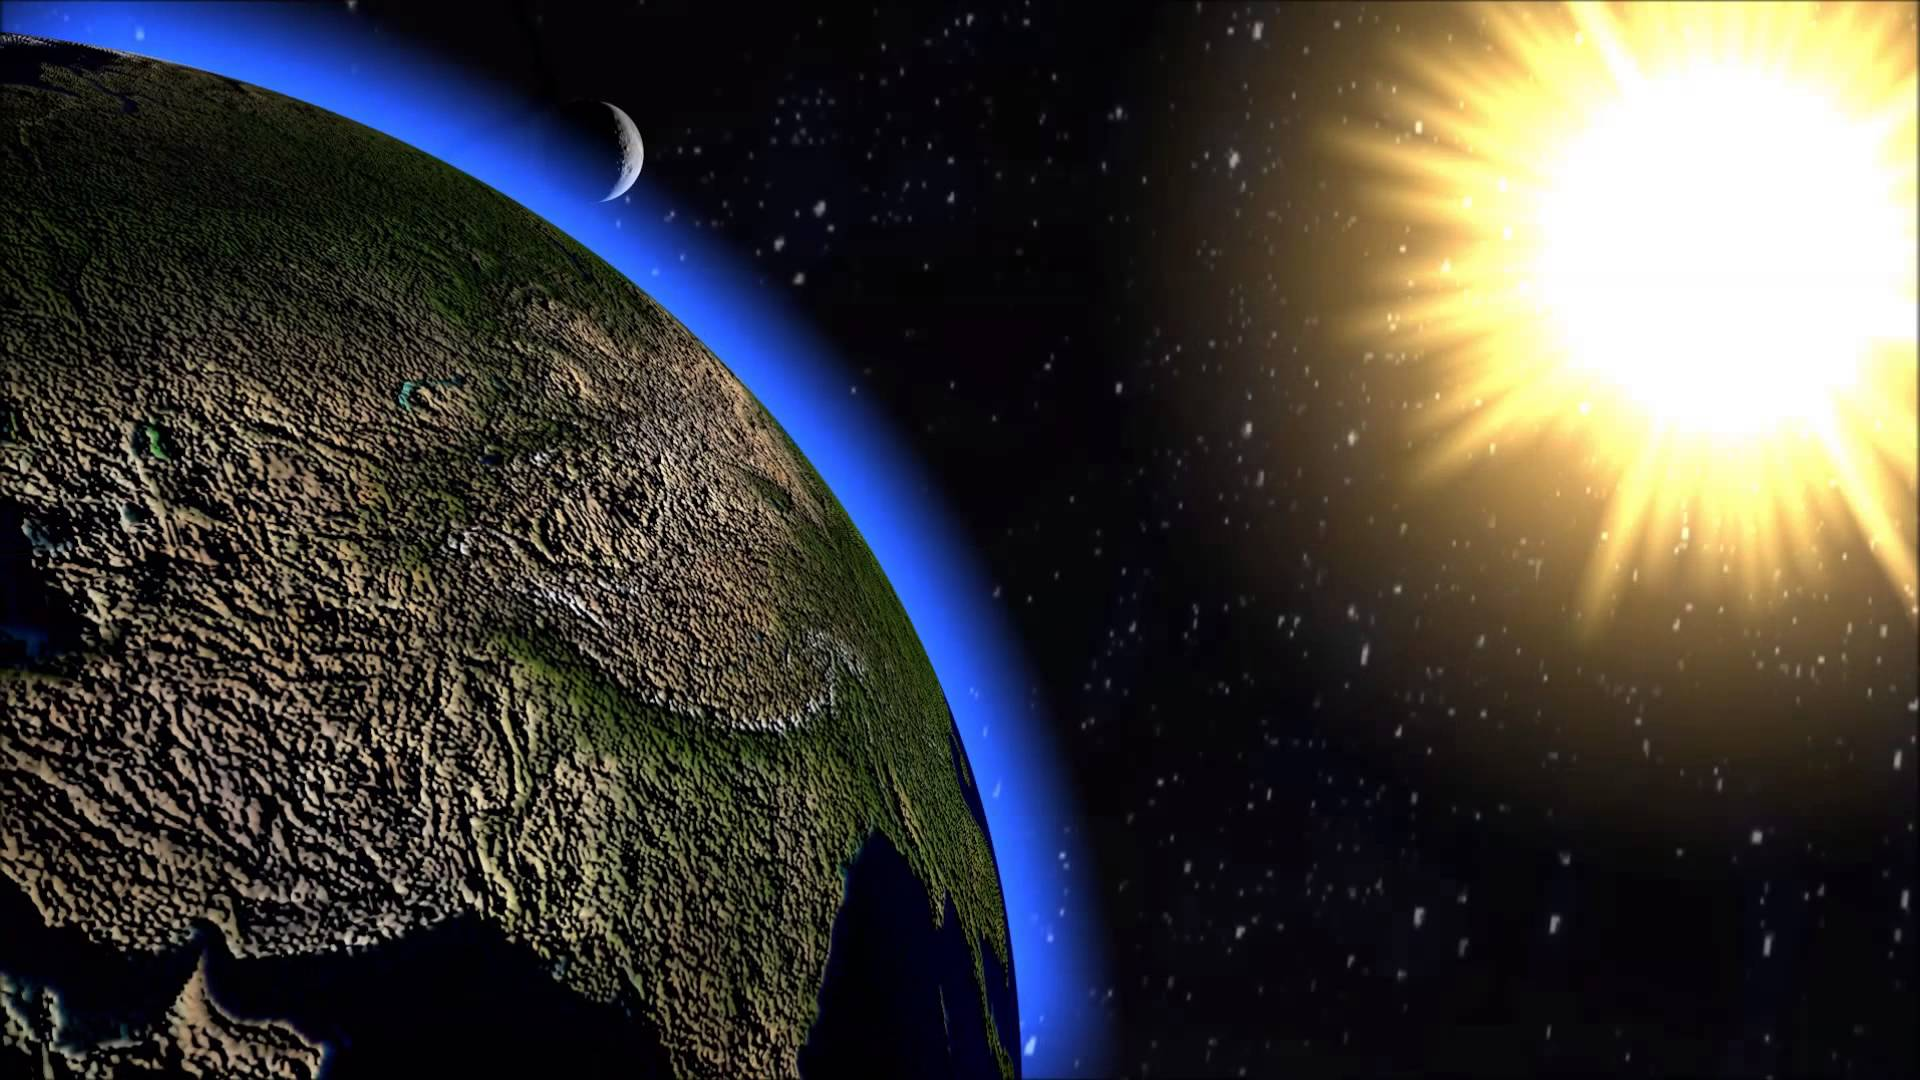 More Wallpaper Collections - Solar System Sun Earth , HD Wallpaper & Backgrounds